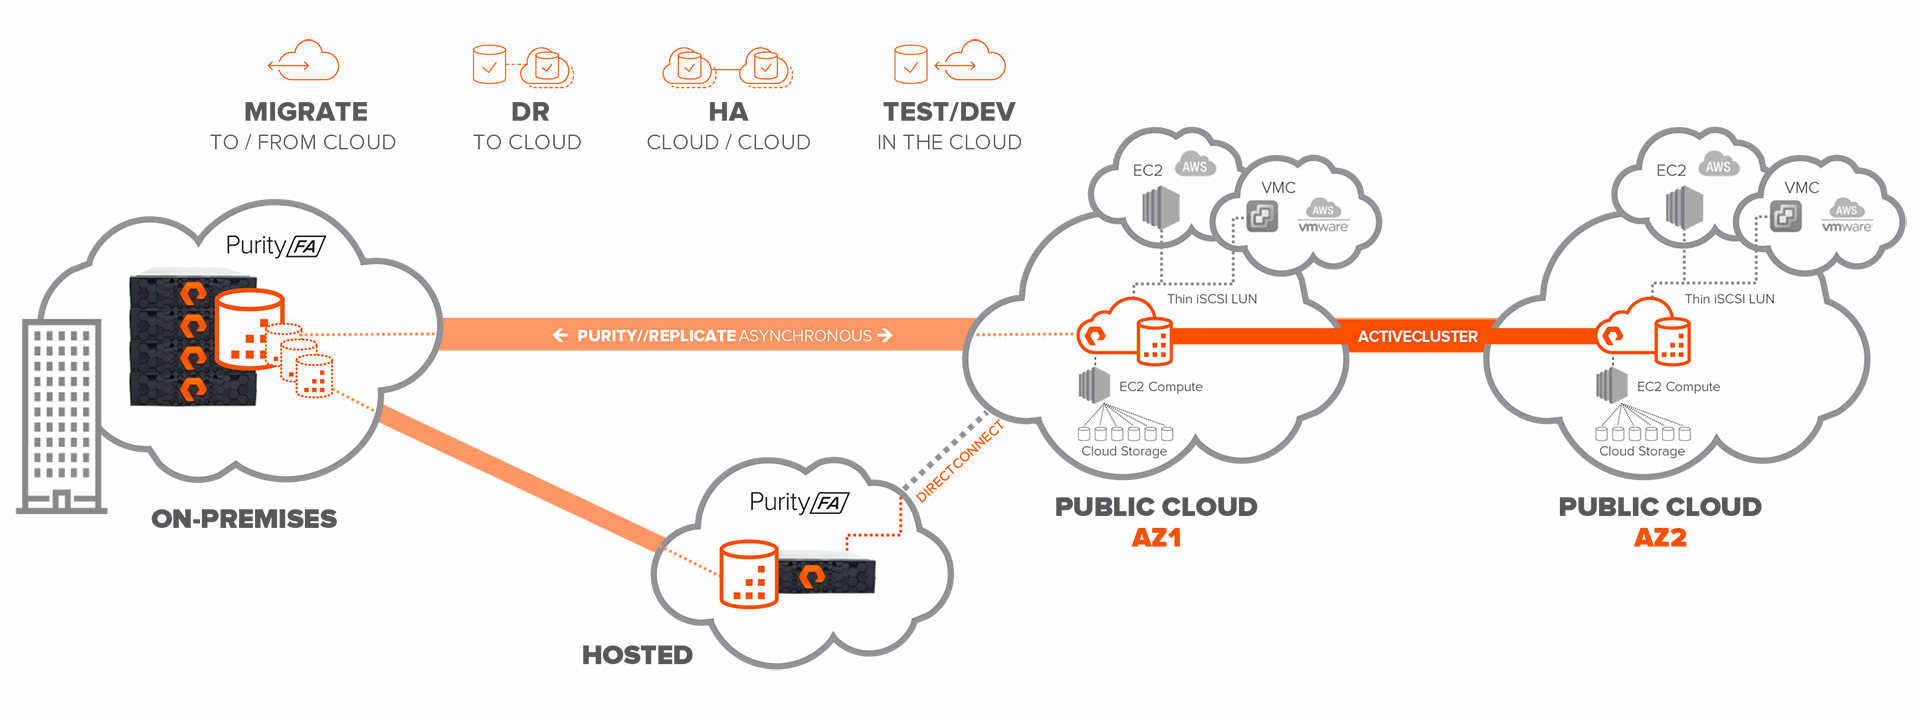 Cloud Block Store Enables True Hybrid Cloud and Unlocks Possibilities